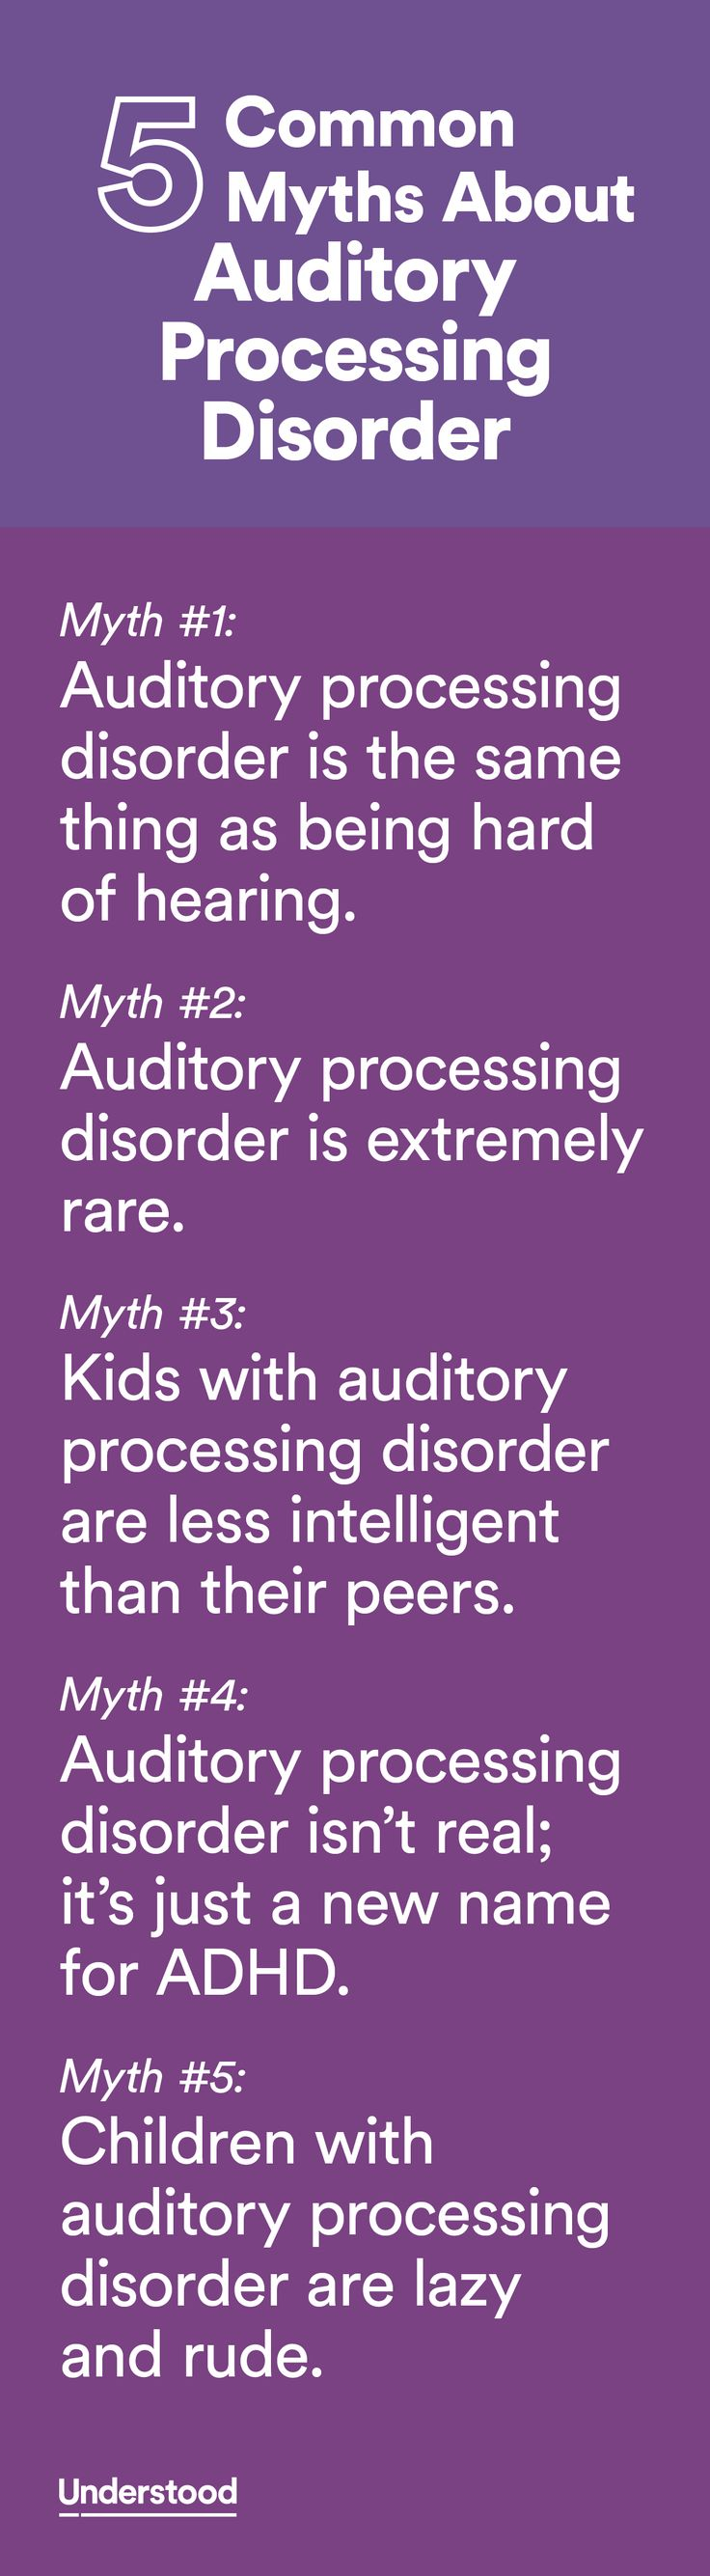 5 Common Myths About Auditory Processing Disorder  The O. Summer Program Scholarships For High School Students. What Is Assisted Living For Seniors. Damascus Road Community Church. Wireless Alarm Companies Width Of Garage Door. Leadership Self Assessment Paper. Security Protective Specialist. Dodge Dealership In Raleigh Nc. How To Get Rid Of Credit Card Debt